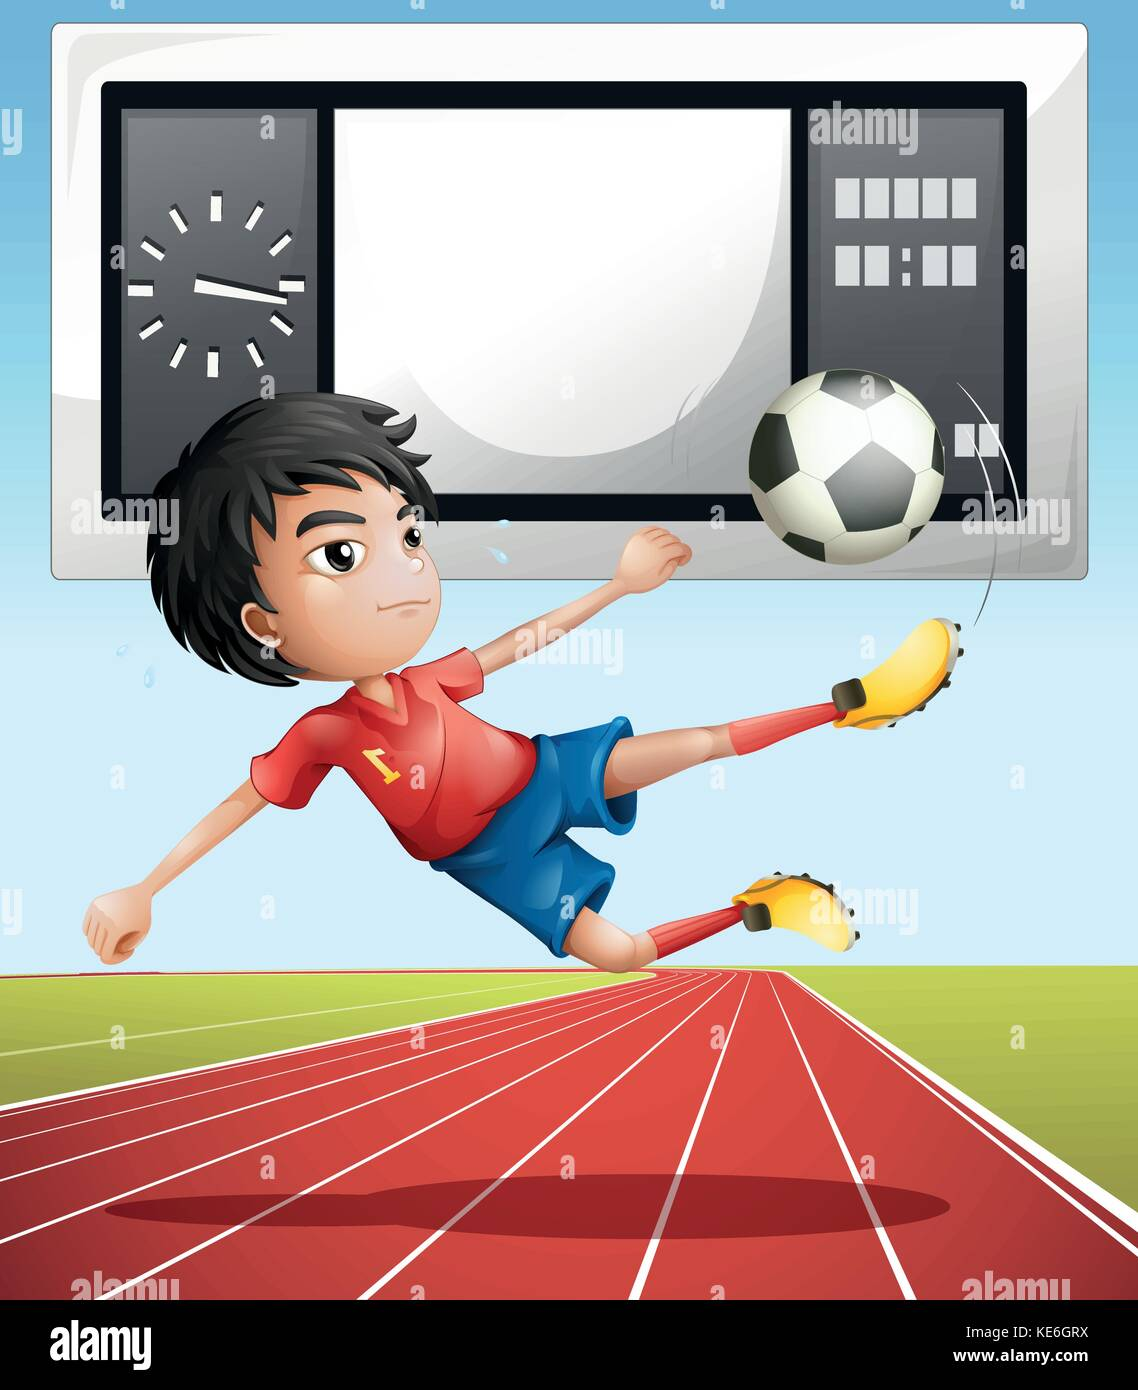 Soccer player in the field illustration - Stock Vector